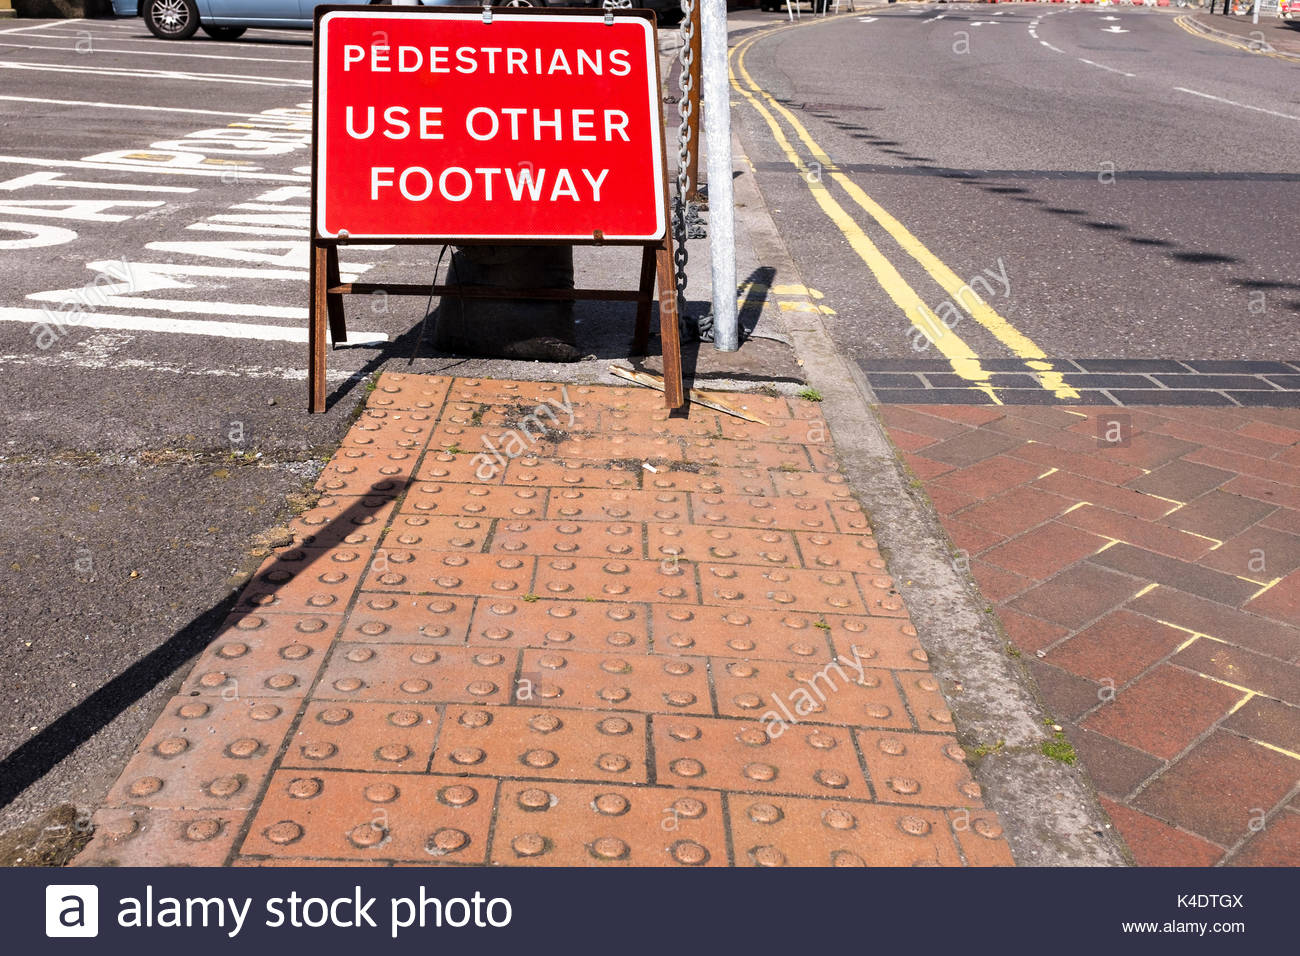 Tactile paving to assist those with visual impairment by road crossing point and Pedestrians Use Other Footway sign, Poole, Dorset, England, UK Stock Photo